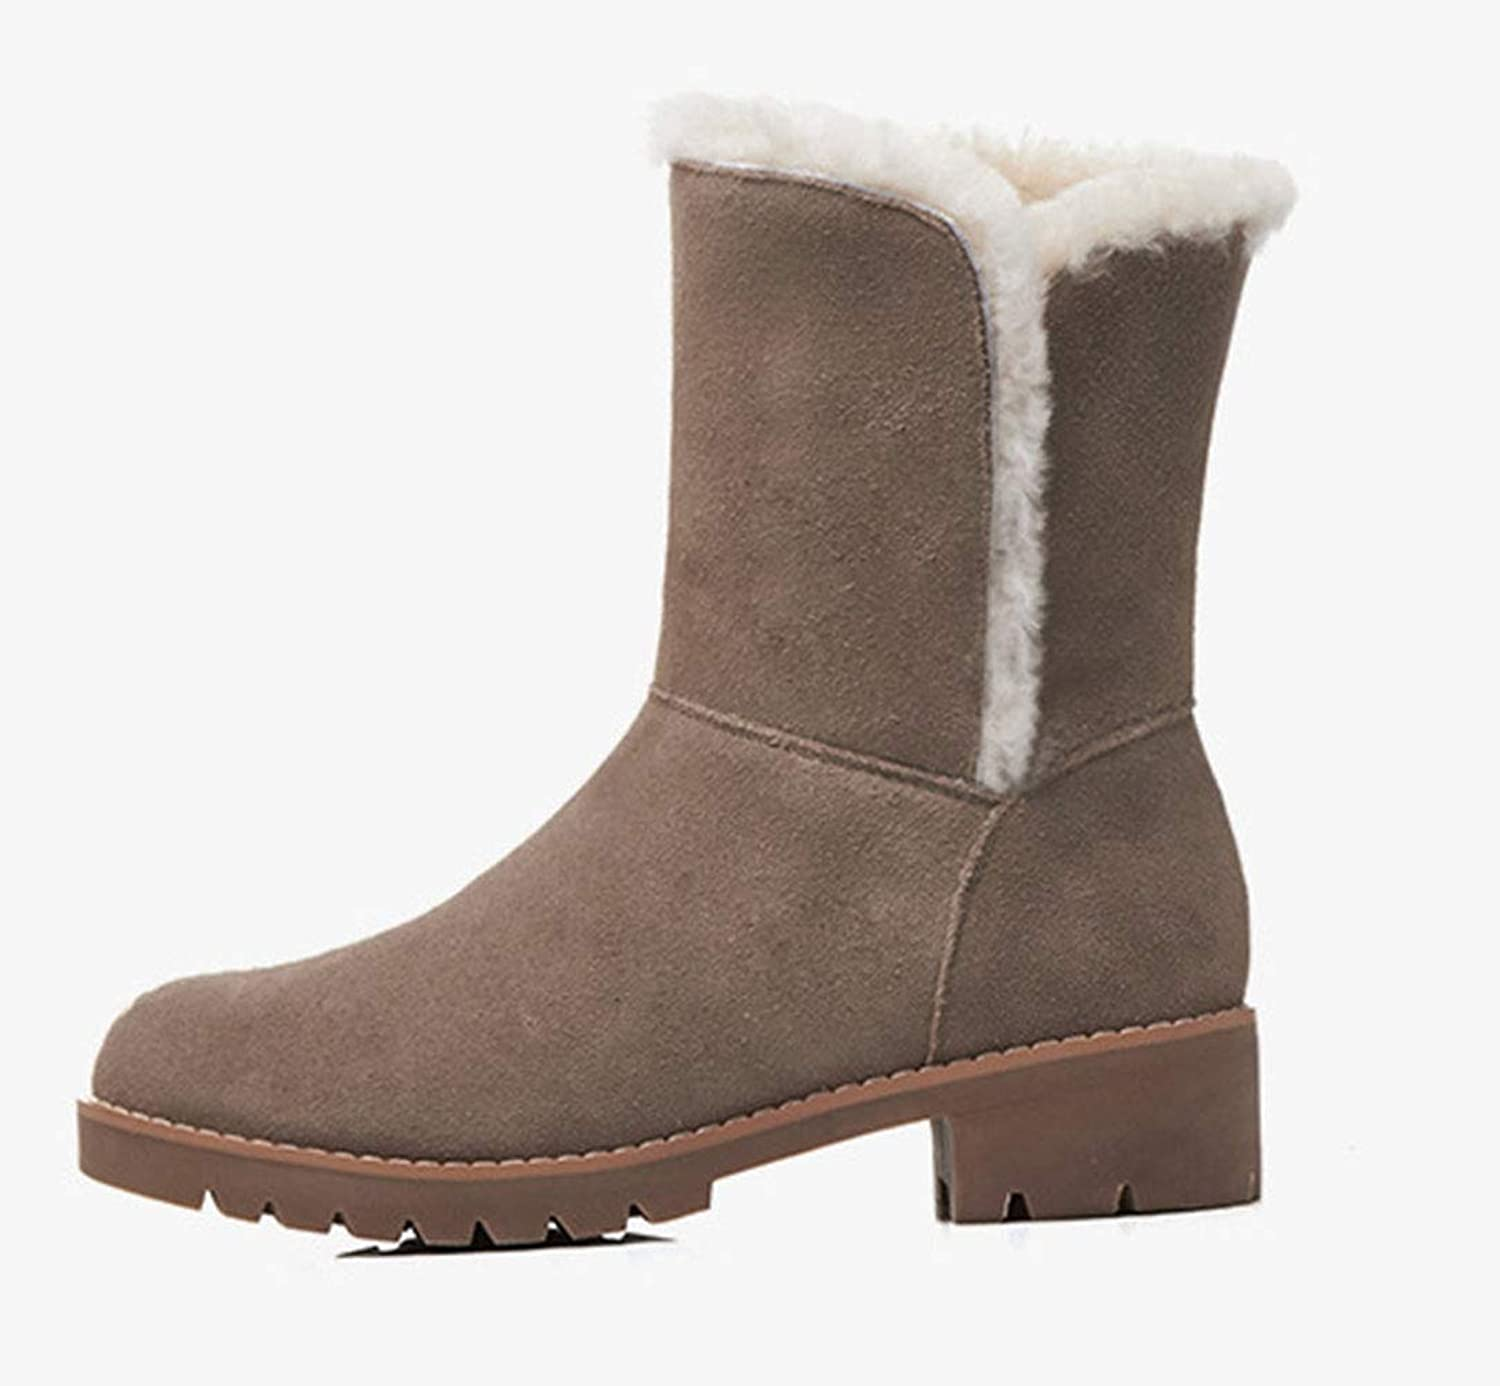 Women's Winter Snow Boots Leather Crude Heel Round Head mid Heel Short Boots Cattle Anti-Skin Lambswool Fashion Boots